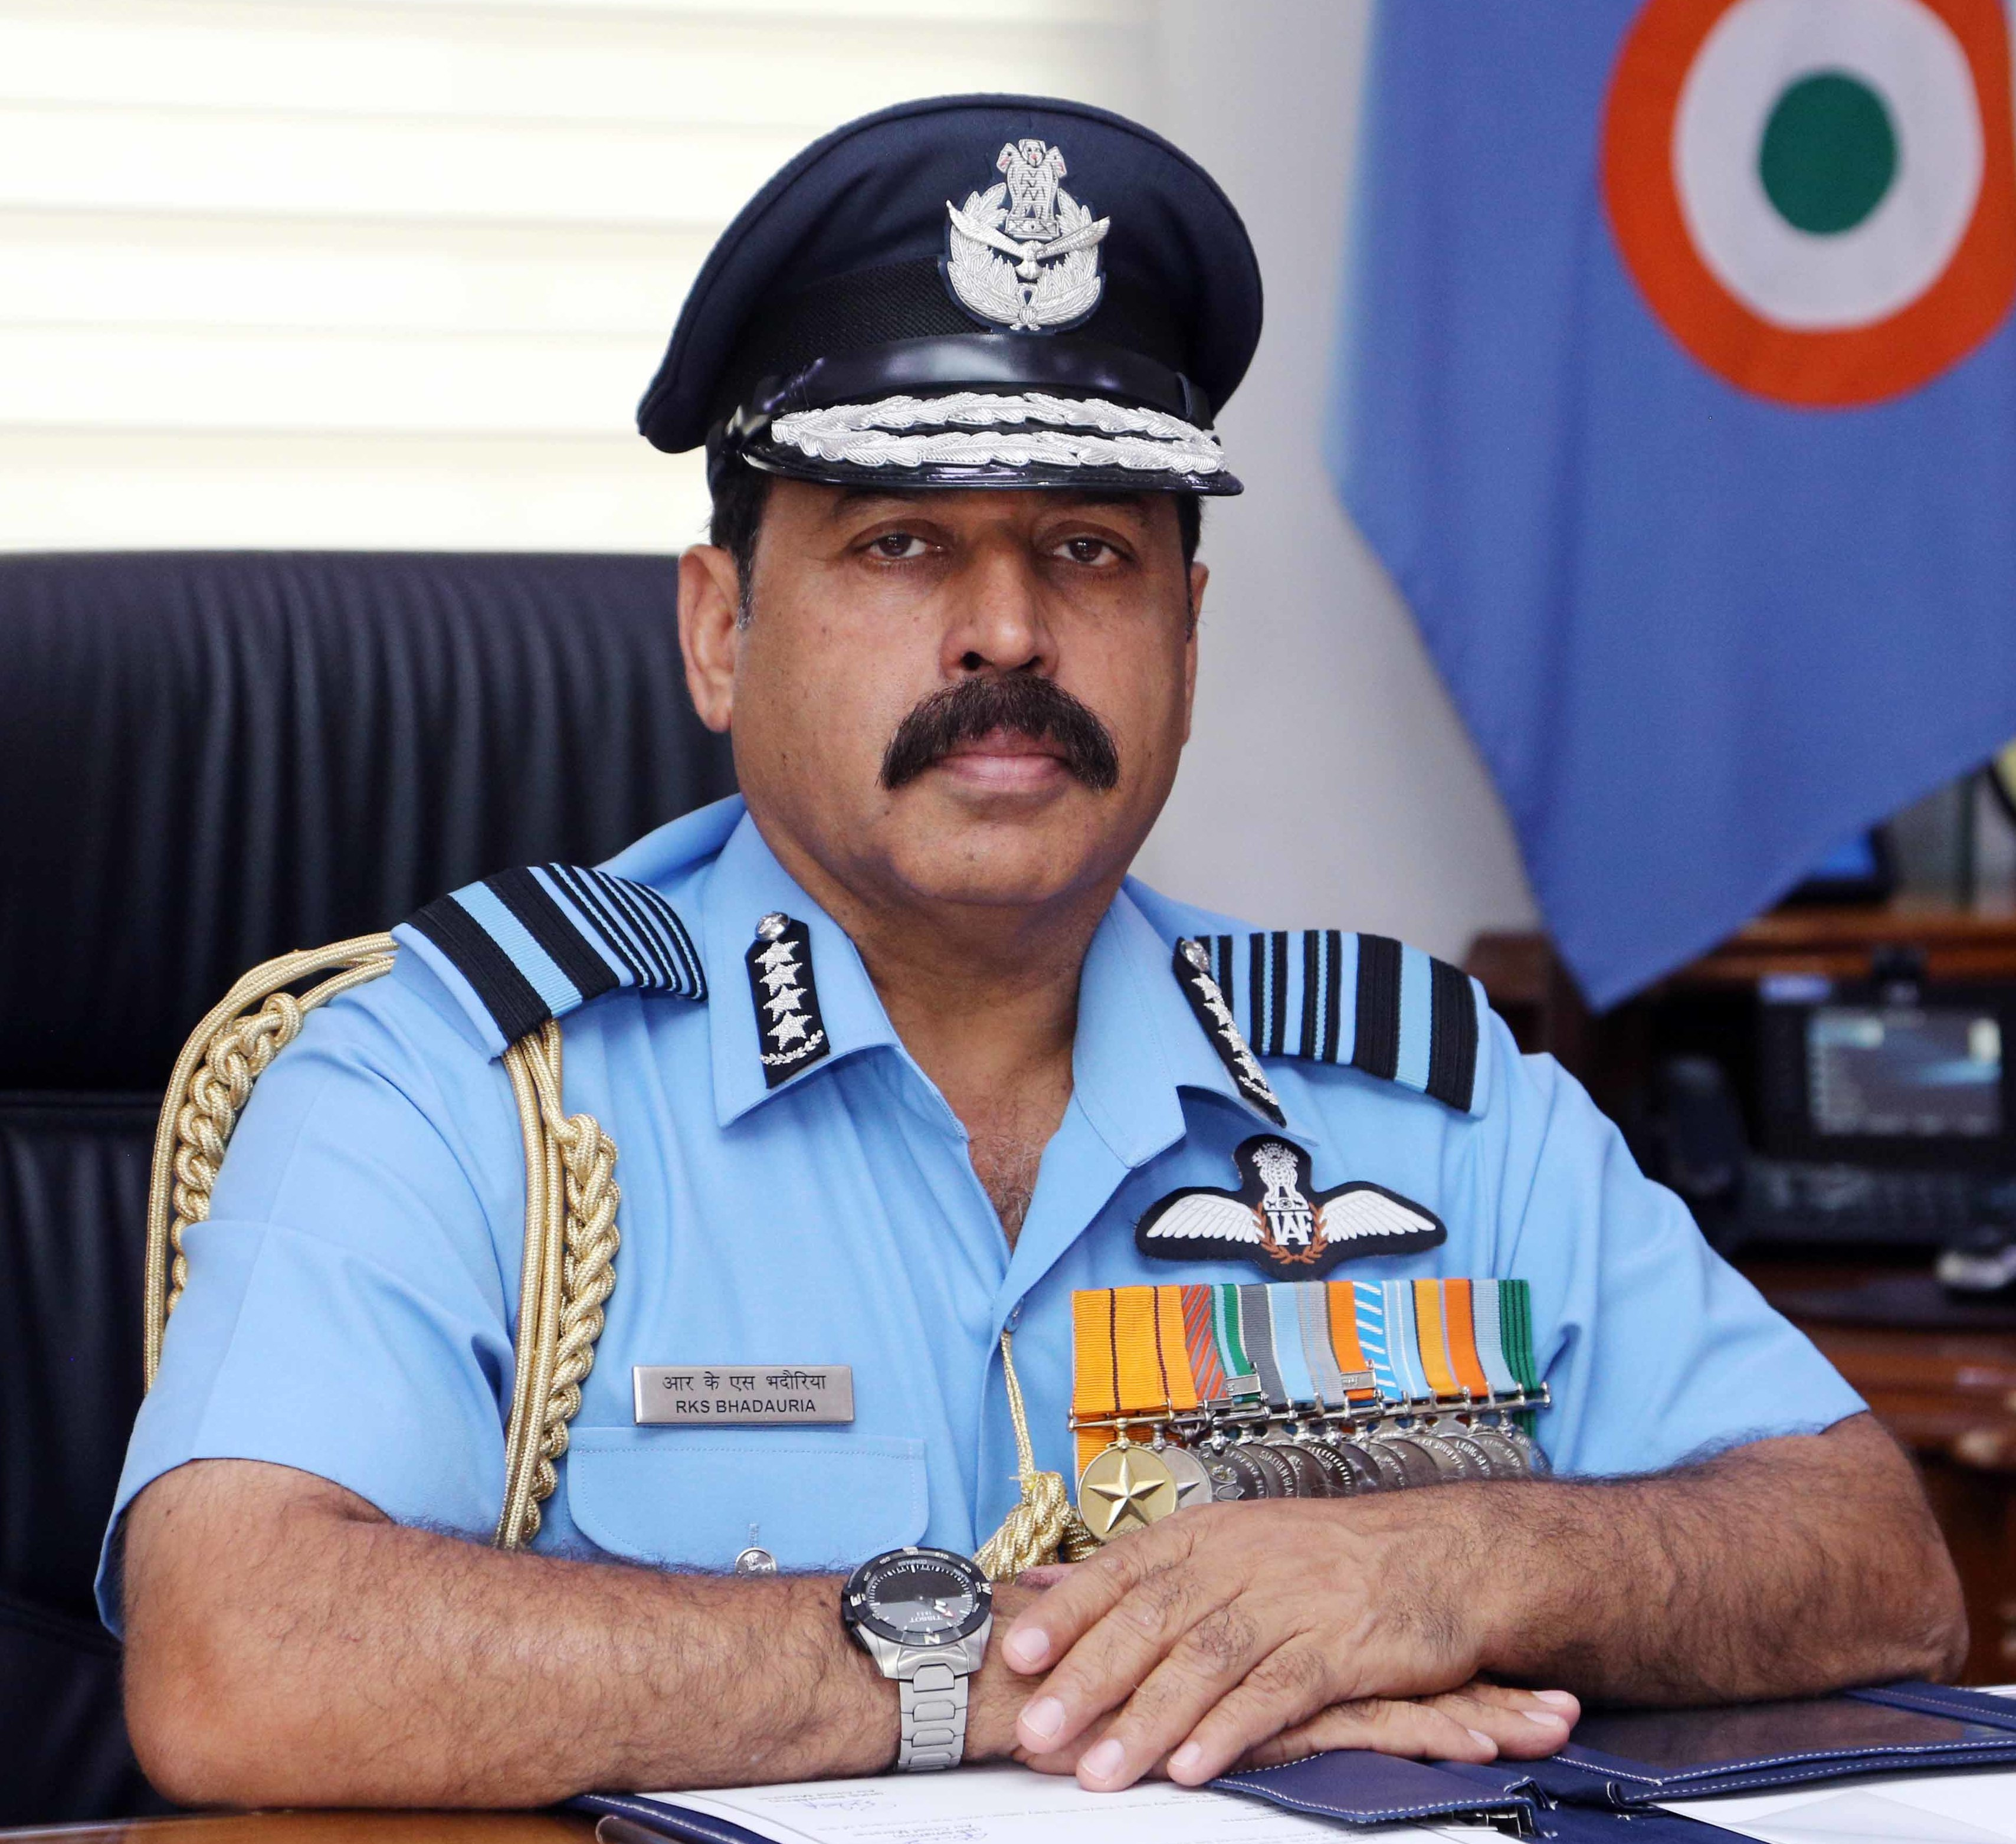 Air Chief Marshal Rakesh Kumar Singh Bhadauria, congratulated the Eastern Air Command for completion of 60 years of glorious service to the nation and highlighted the operational importance of the command.